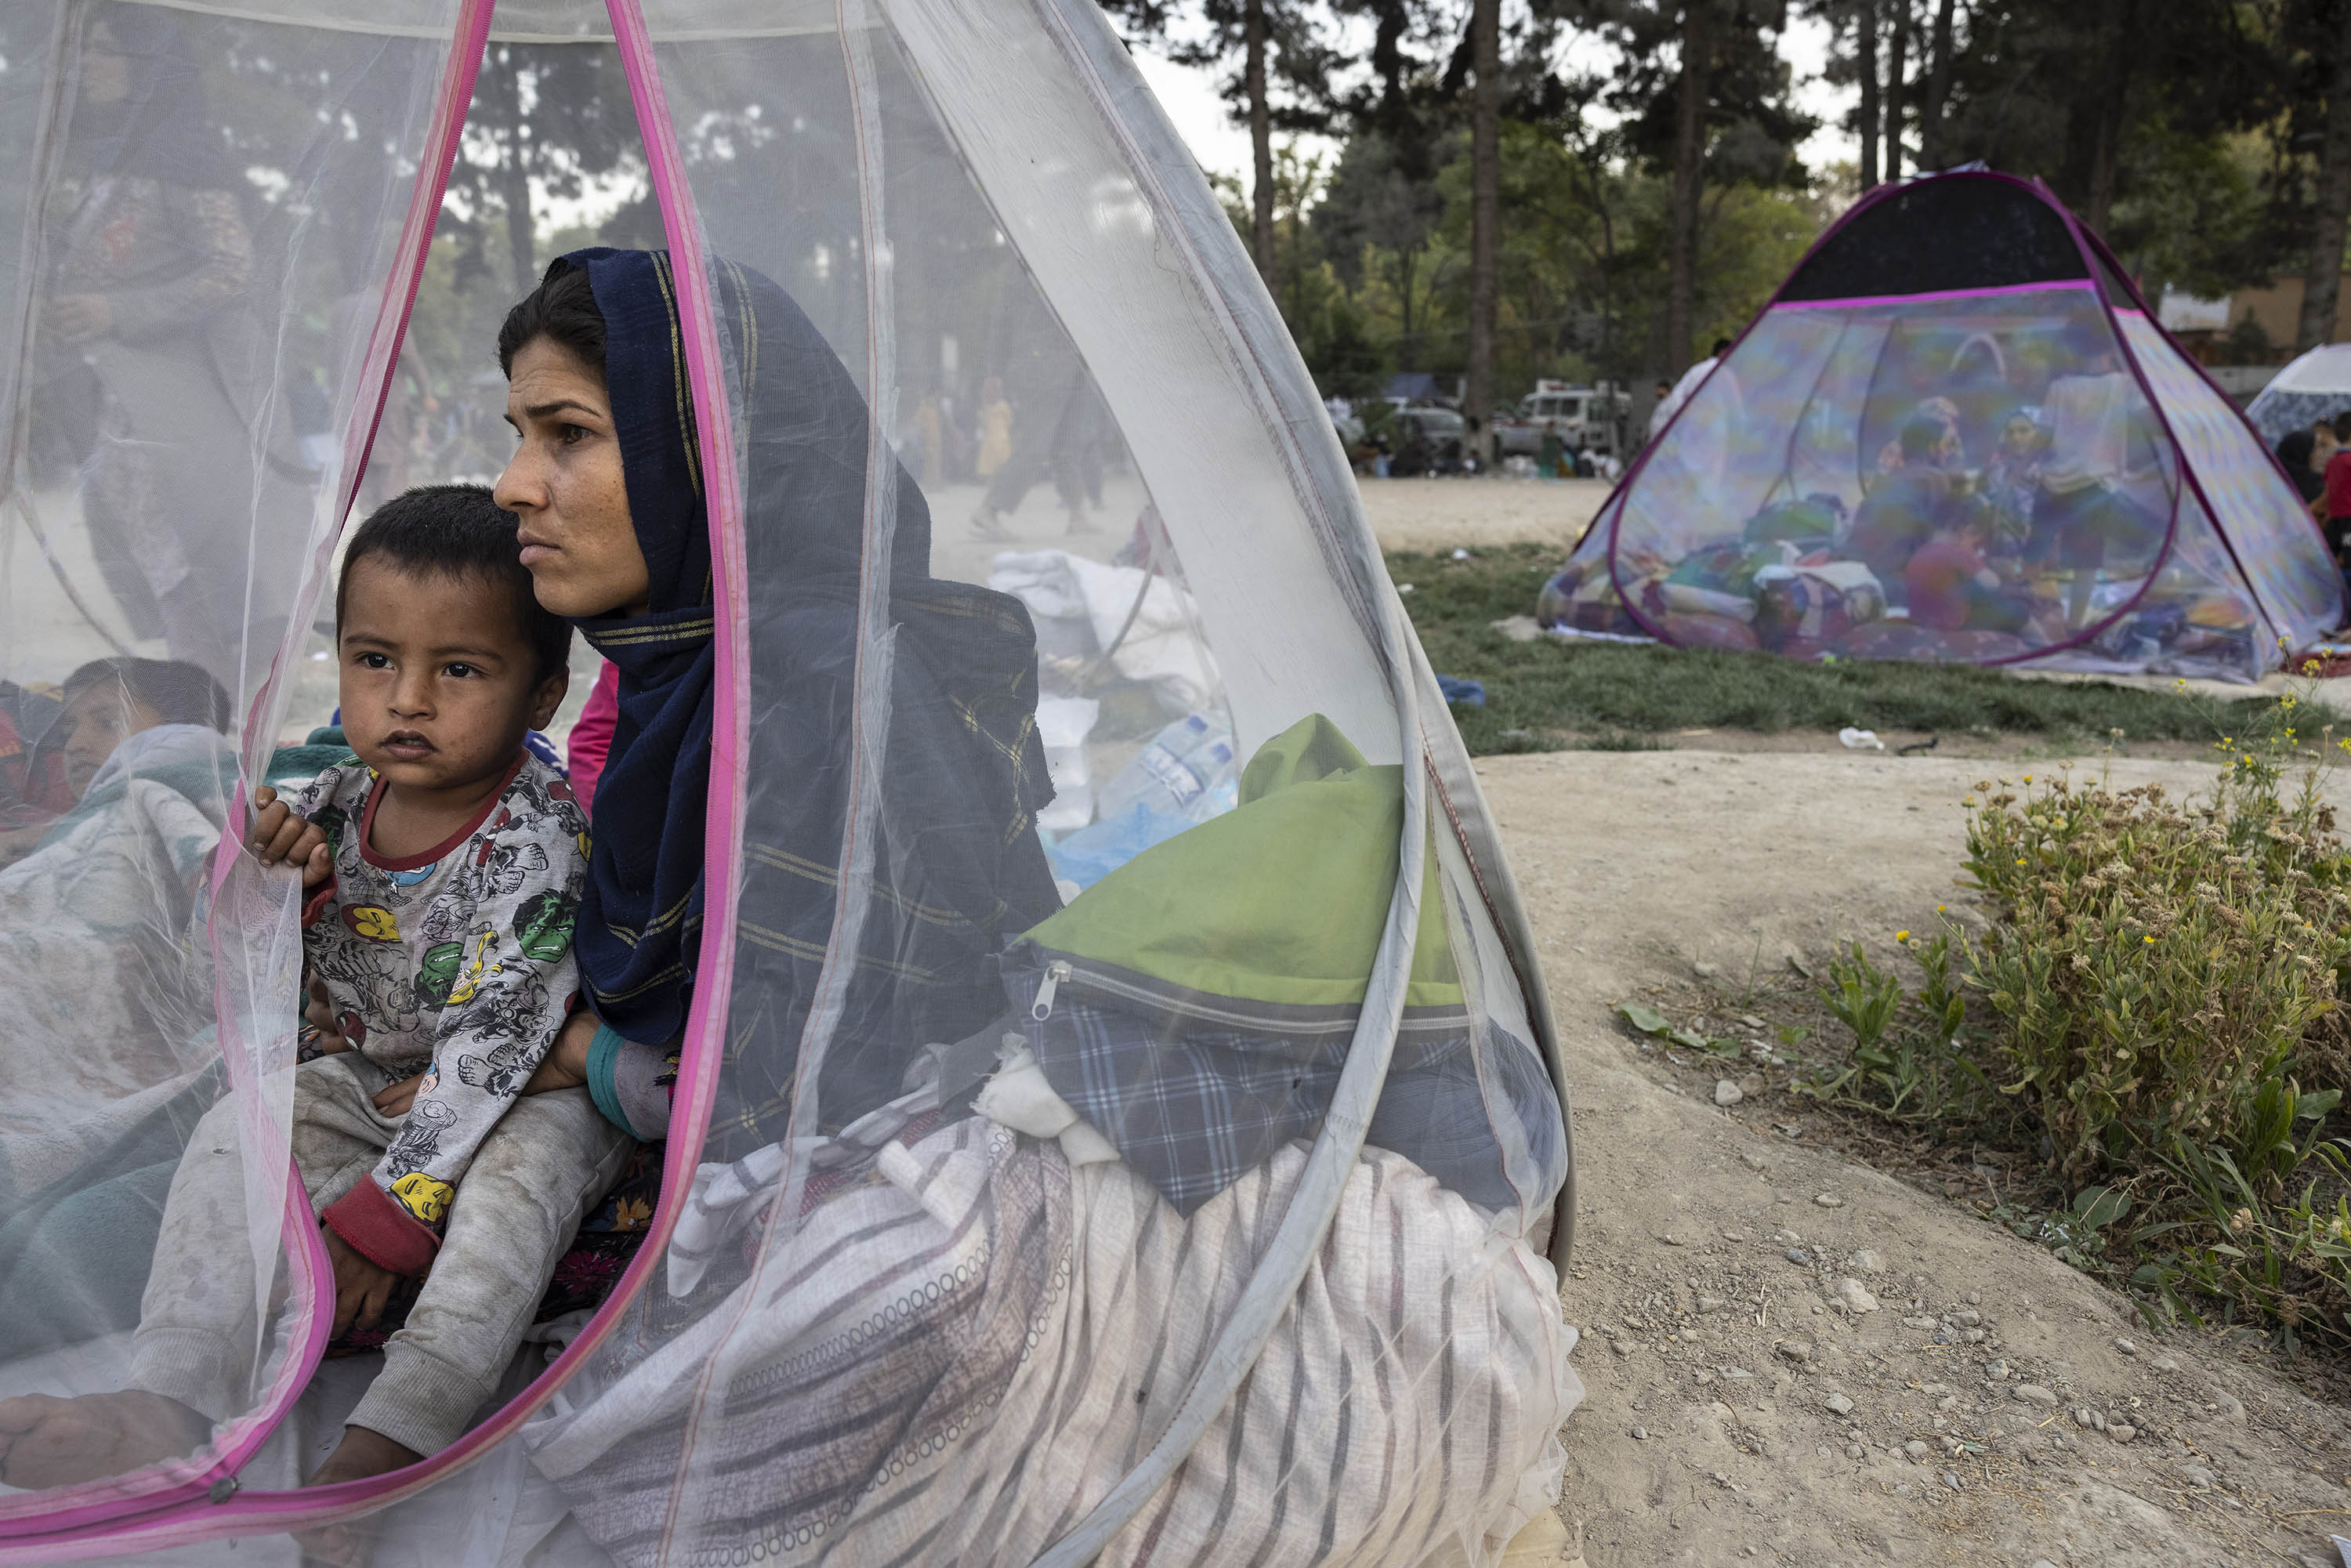 Displaced Afghans sit in a tent at a makeshift IDP camp at a park Kabul, Afghanistan, on August 12.